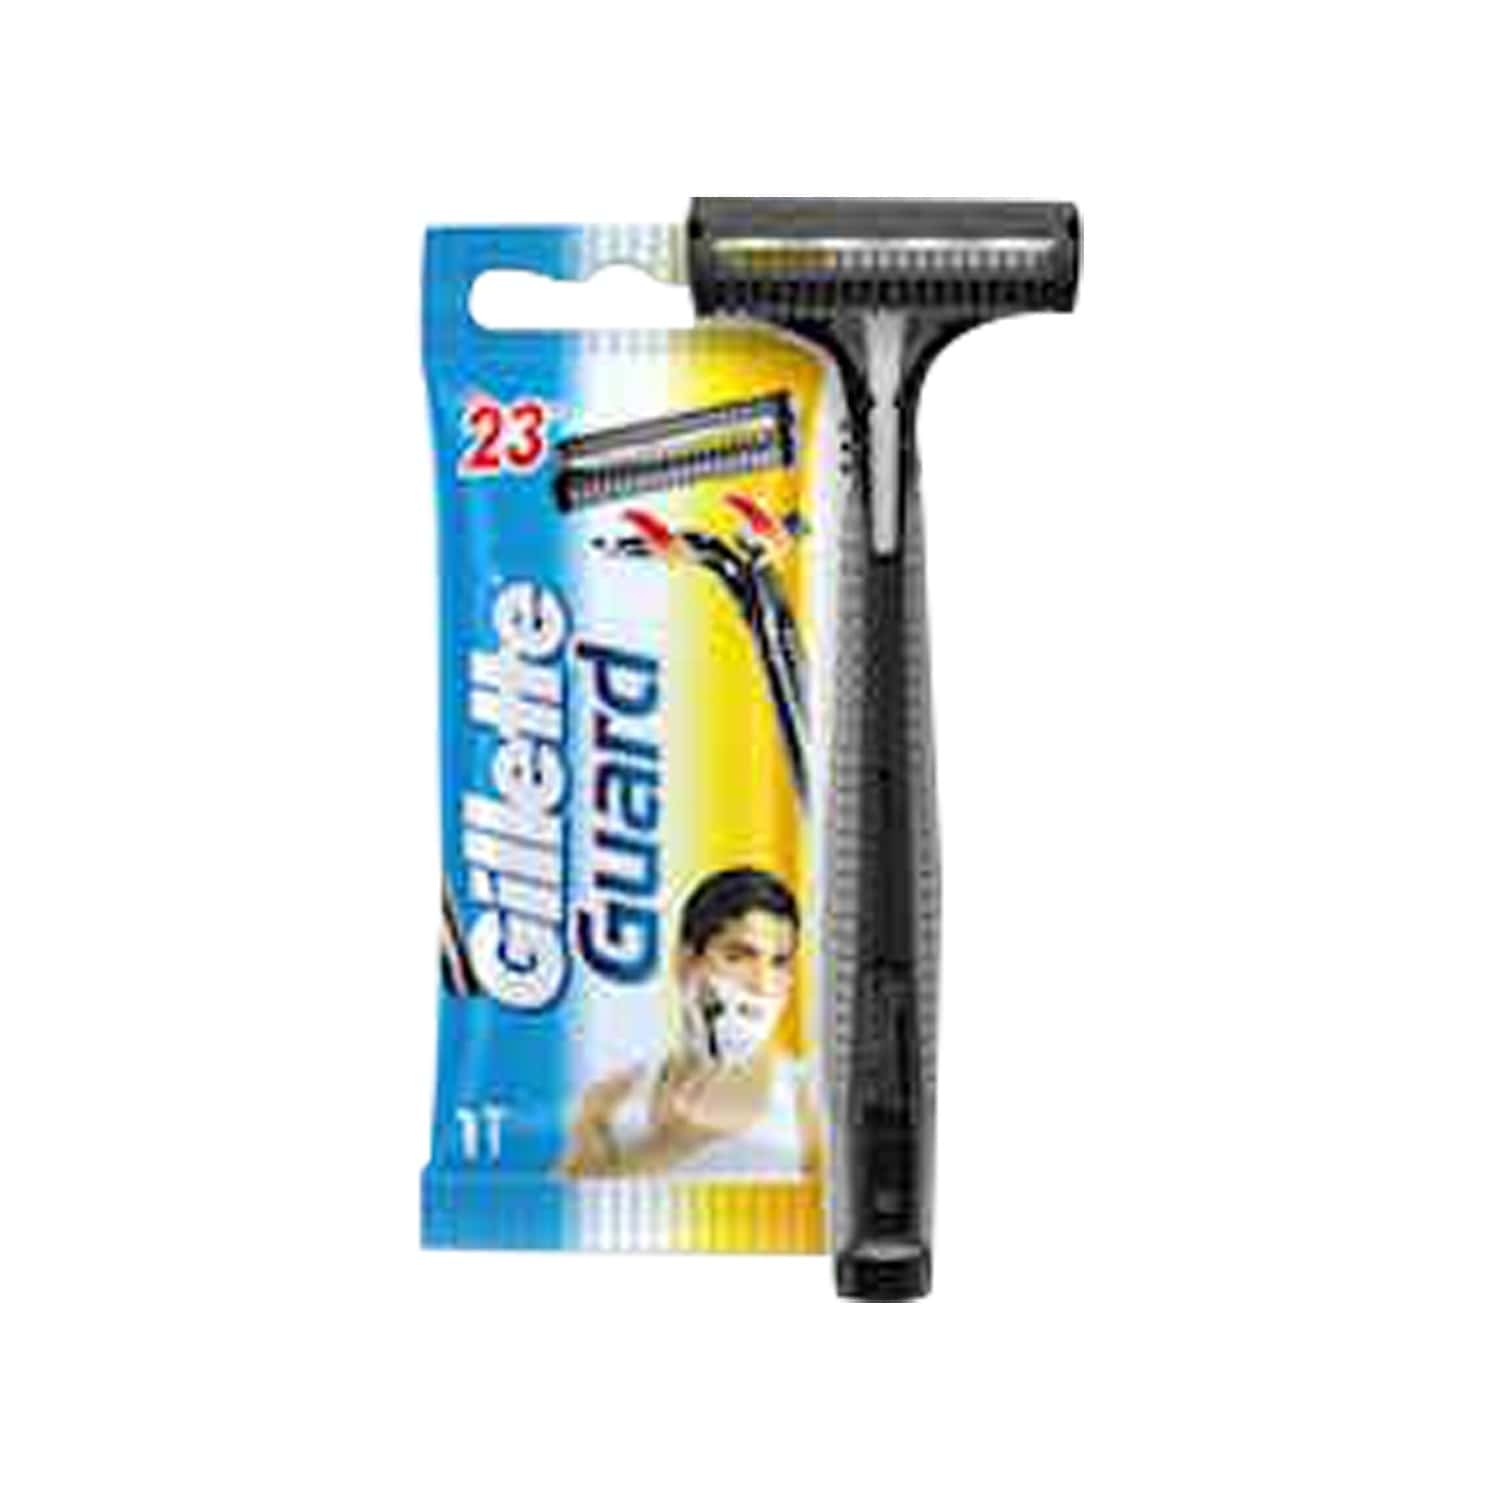 Gillette Guard Manual Shaving Razor